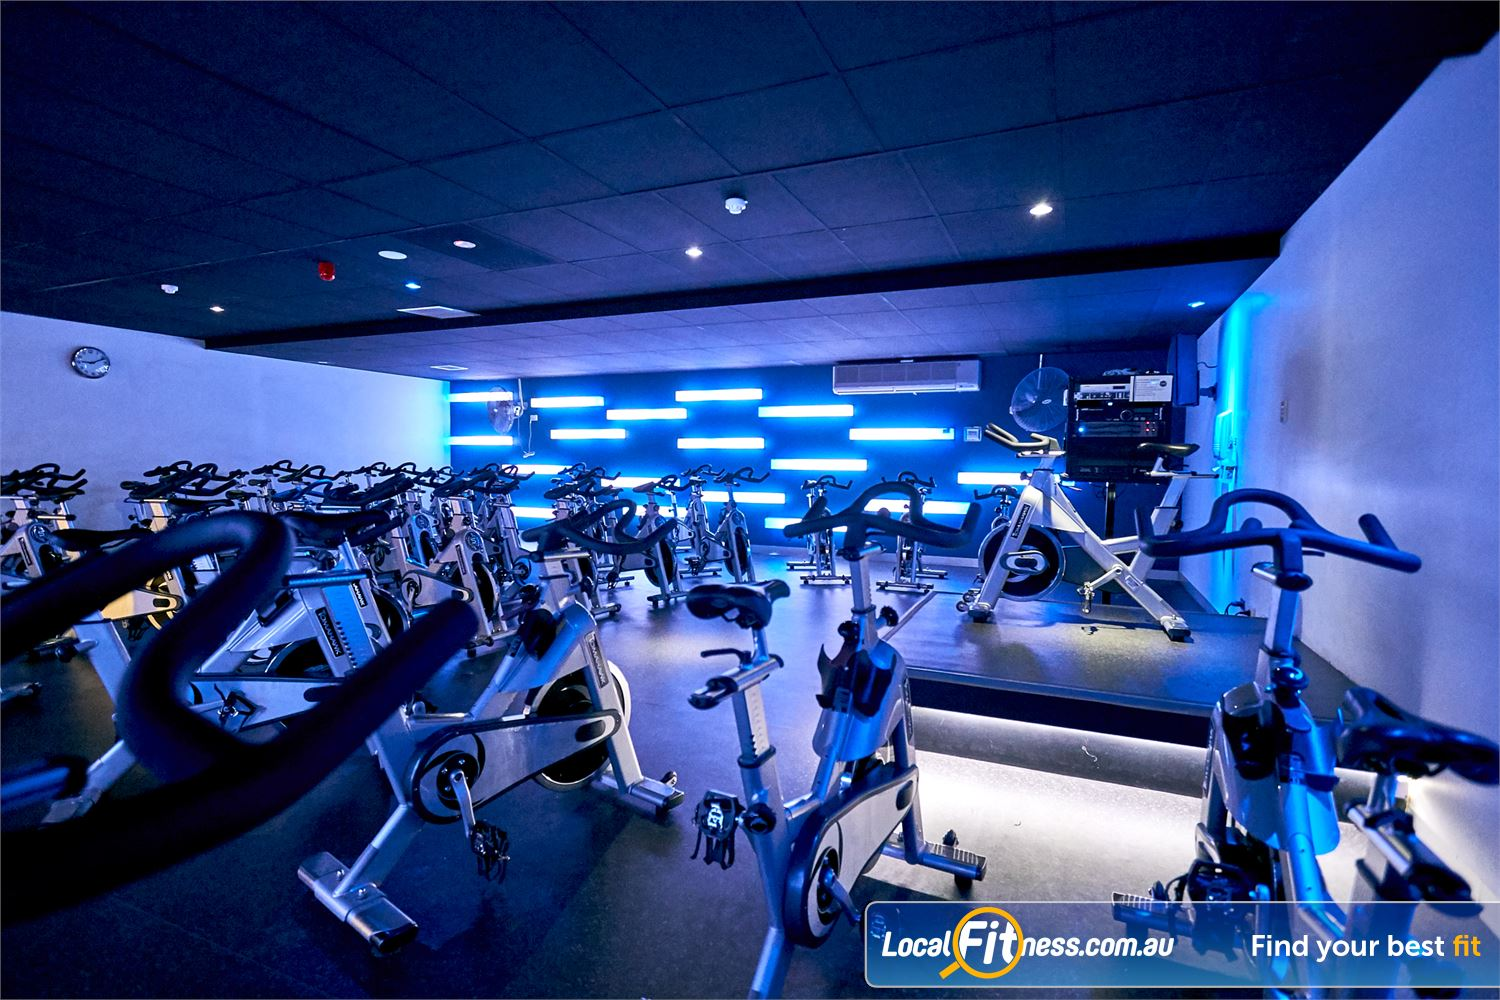 Goodlife Health Clubs Cross Roads Near Lower Mitcham High energy instructors will help you burn calories in an energetic Westbourne Park spin class.